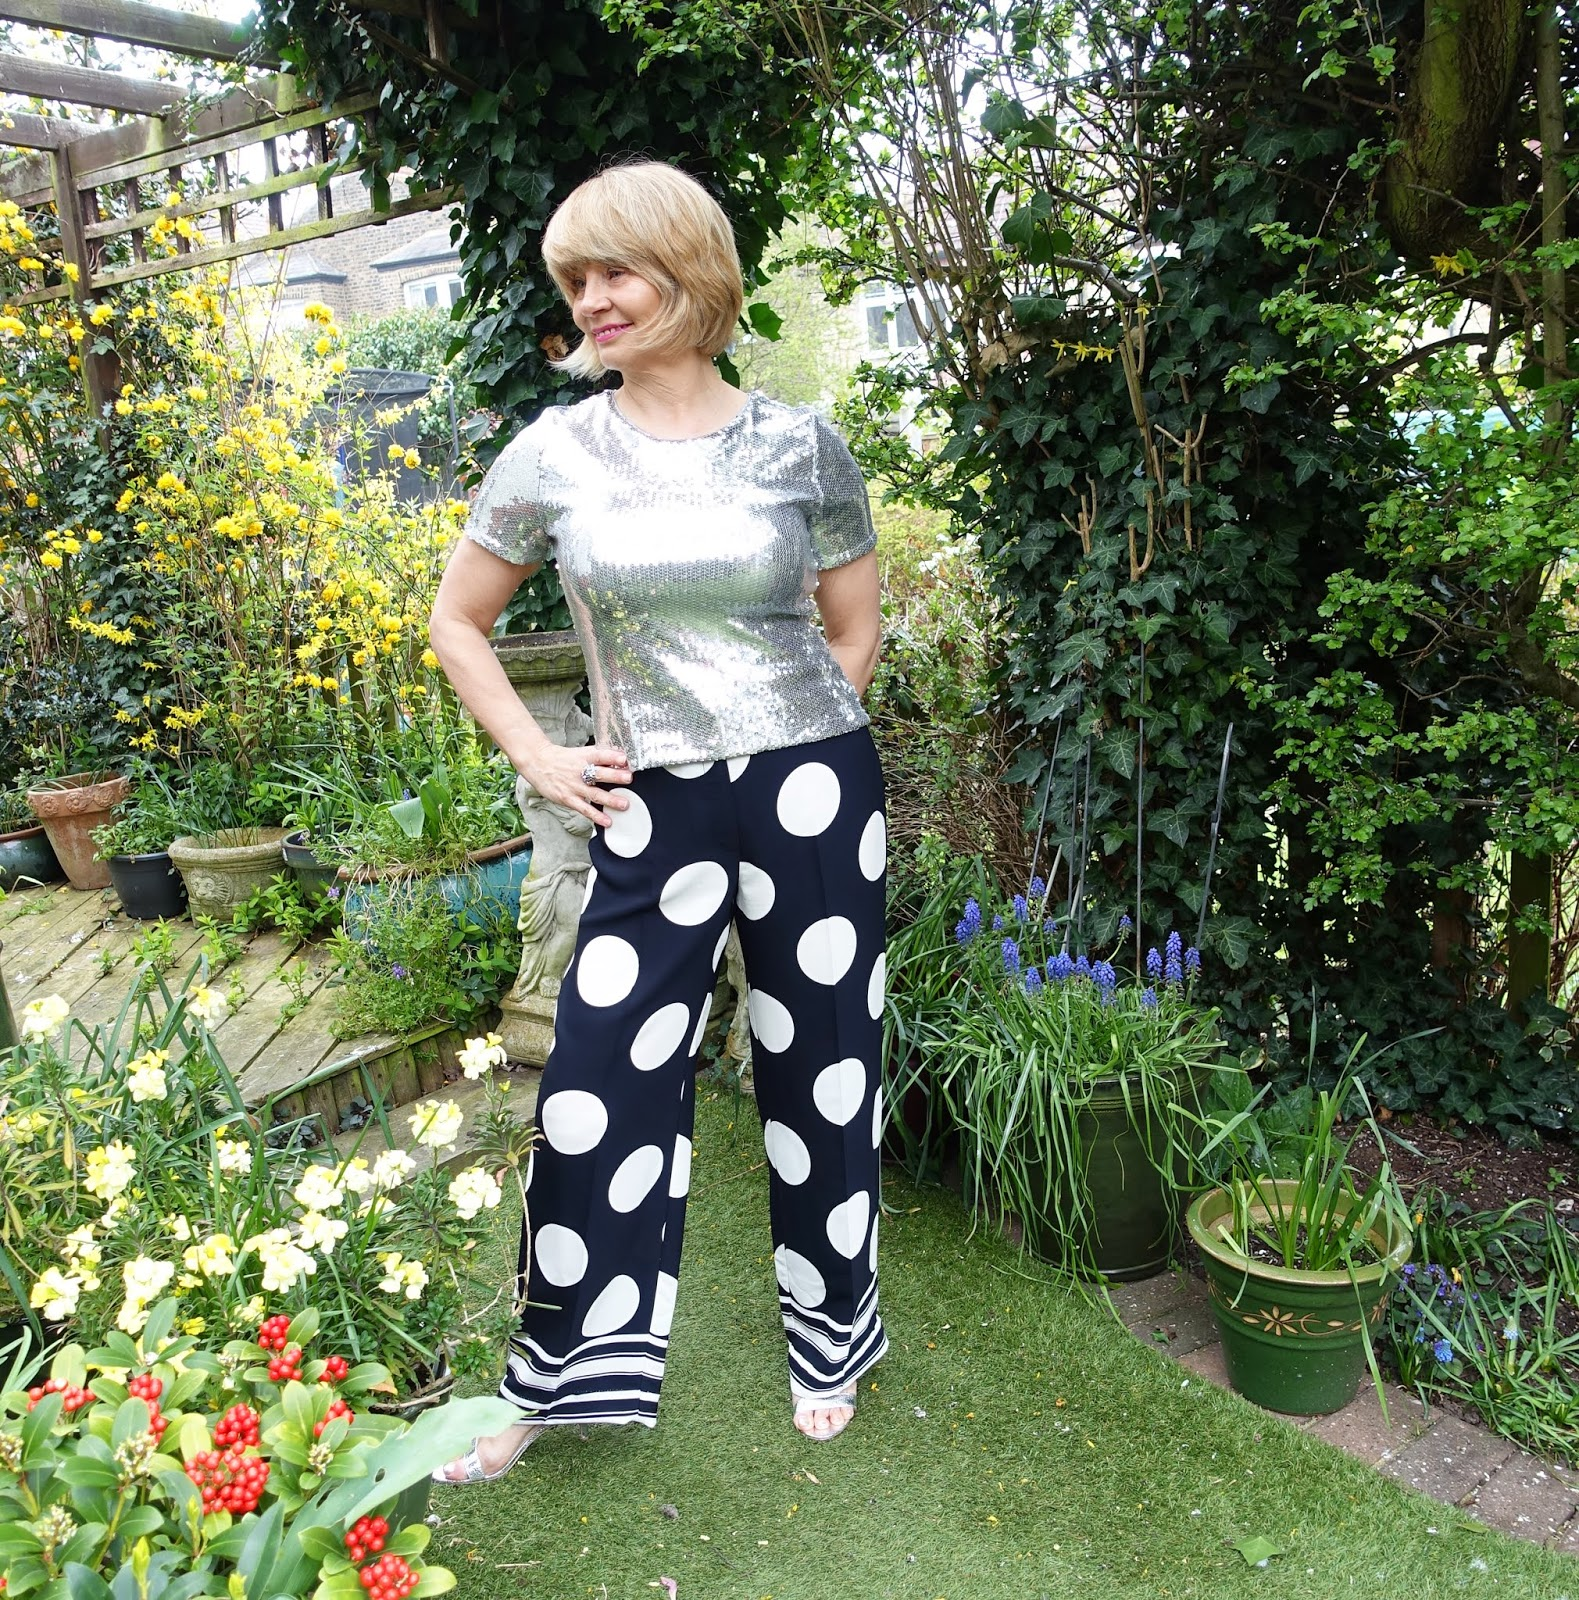 A spring garden is the setting for midlife blogger Gail Hanlon from Is This Mutton in wide statement trousers, silver sequinned top and silver naked sandals